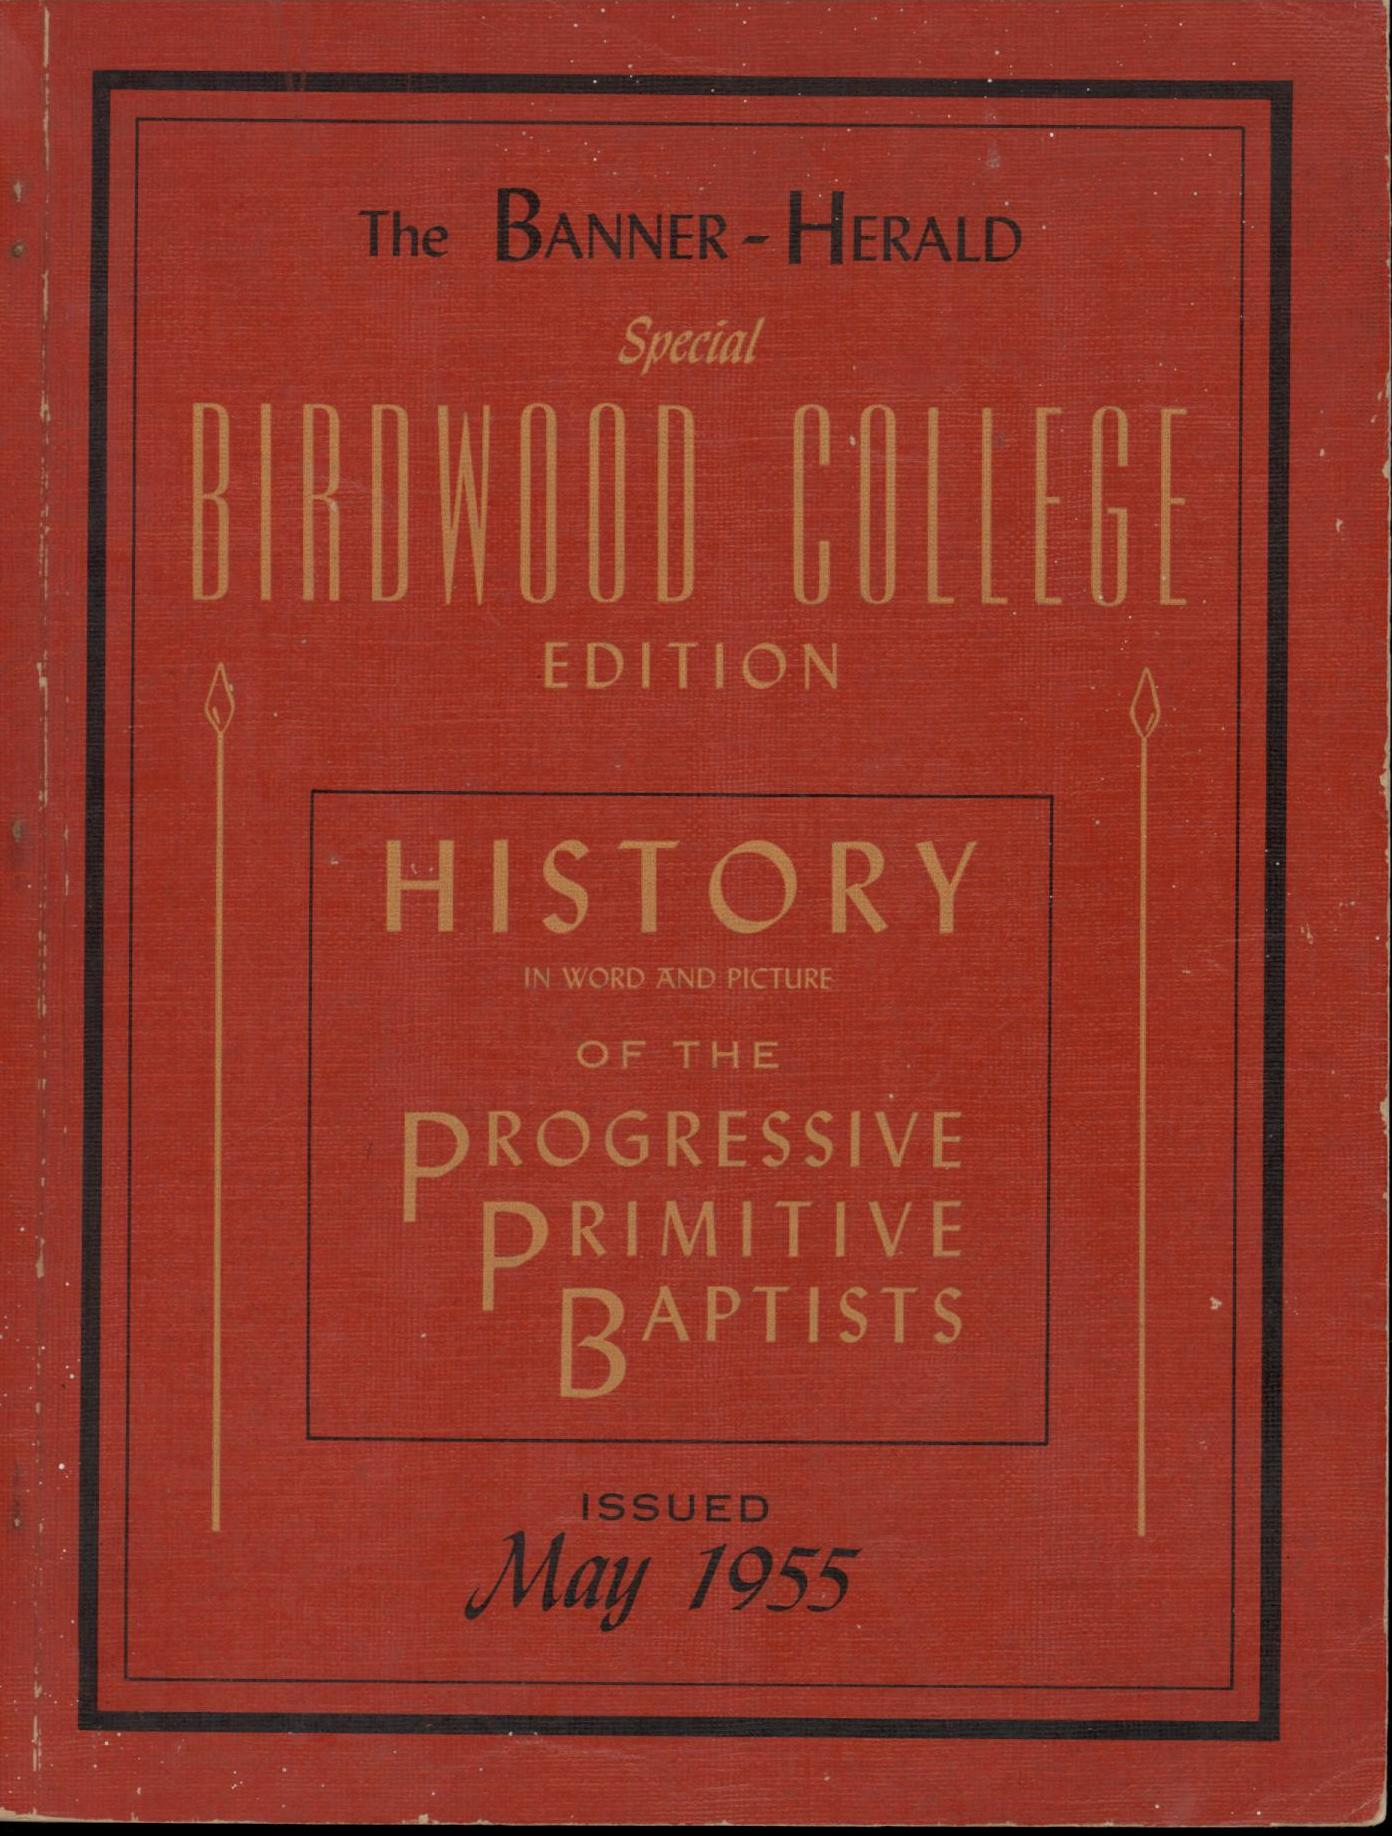 Image for The Banner-Herald Special Birdwood College Edition: History in Word and picture of the Progressive Primitive Baptists Issued 1955: First Edition